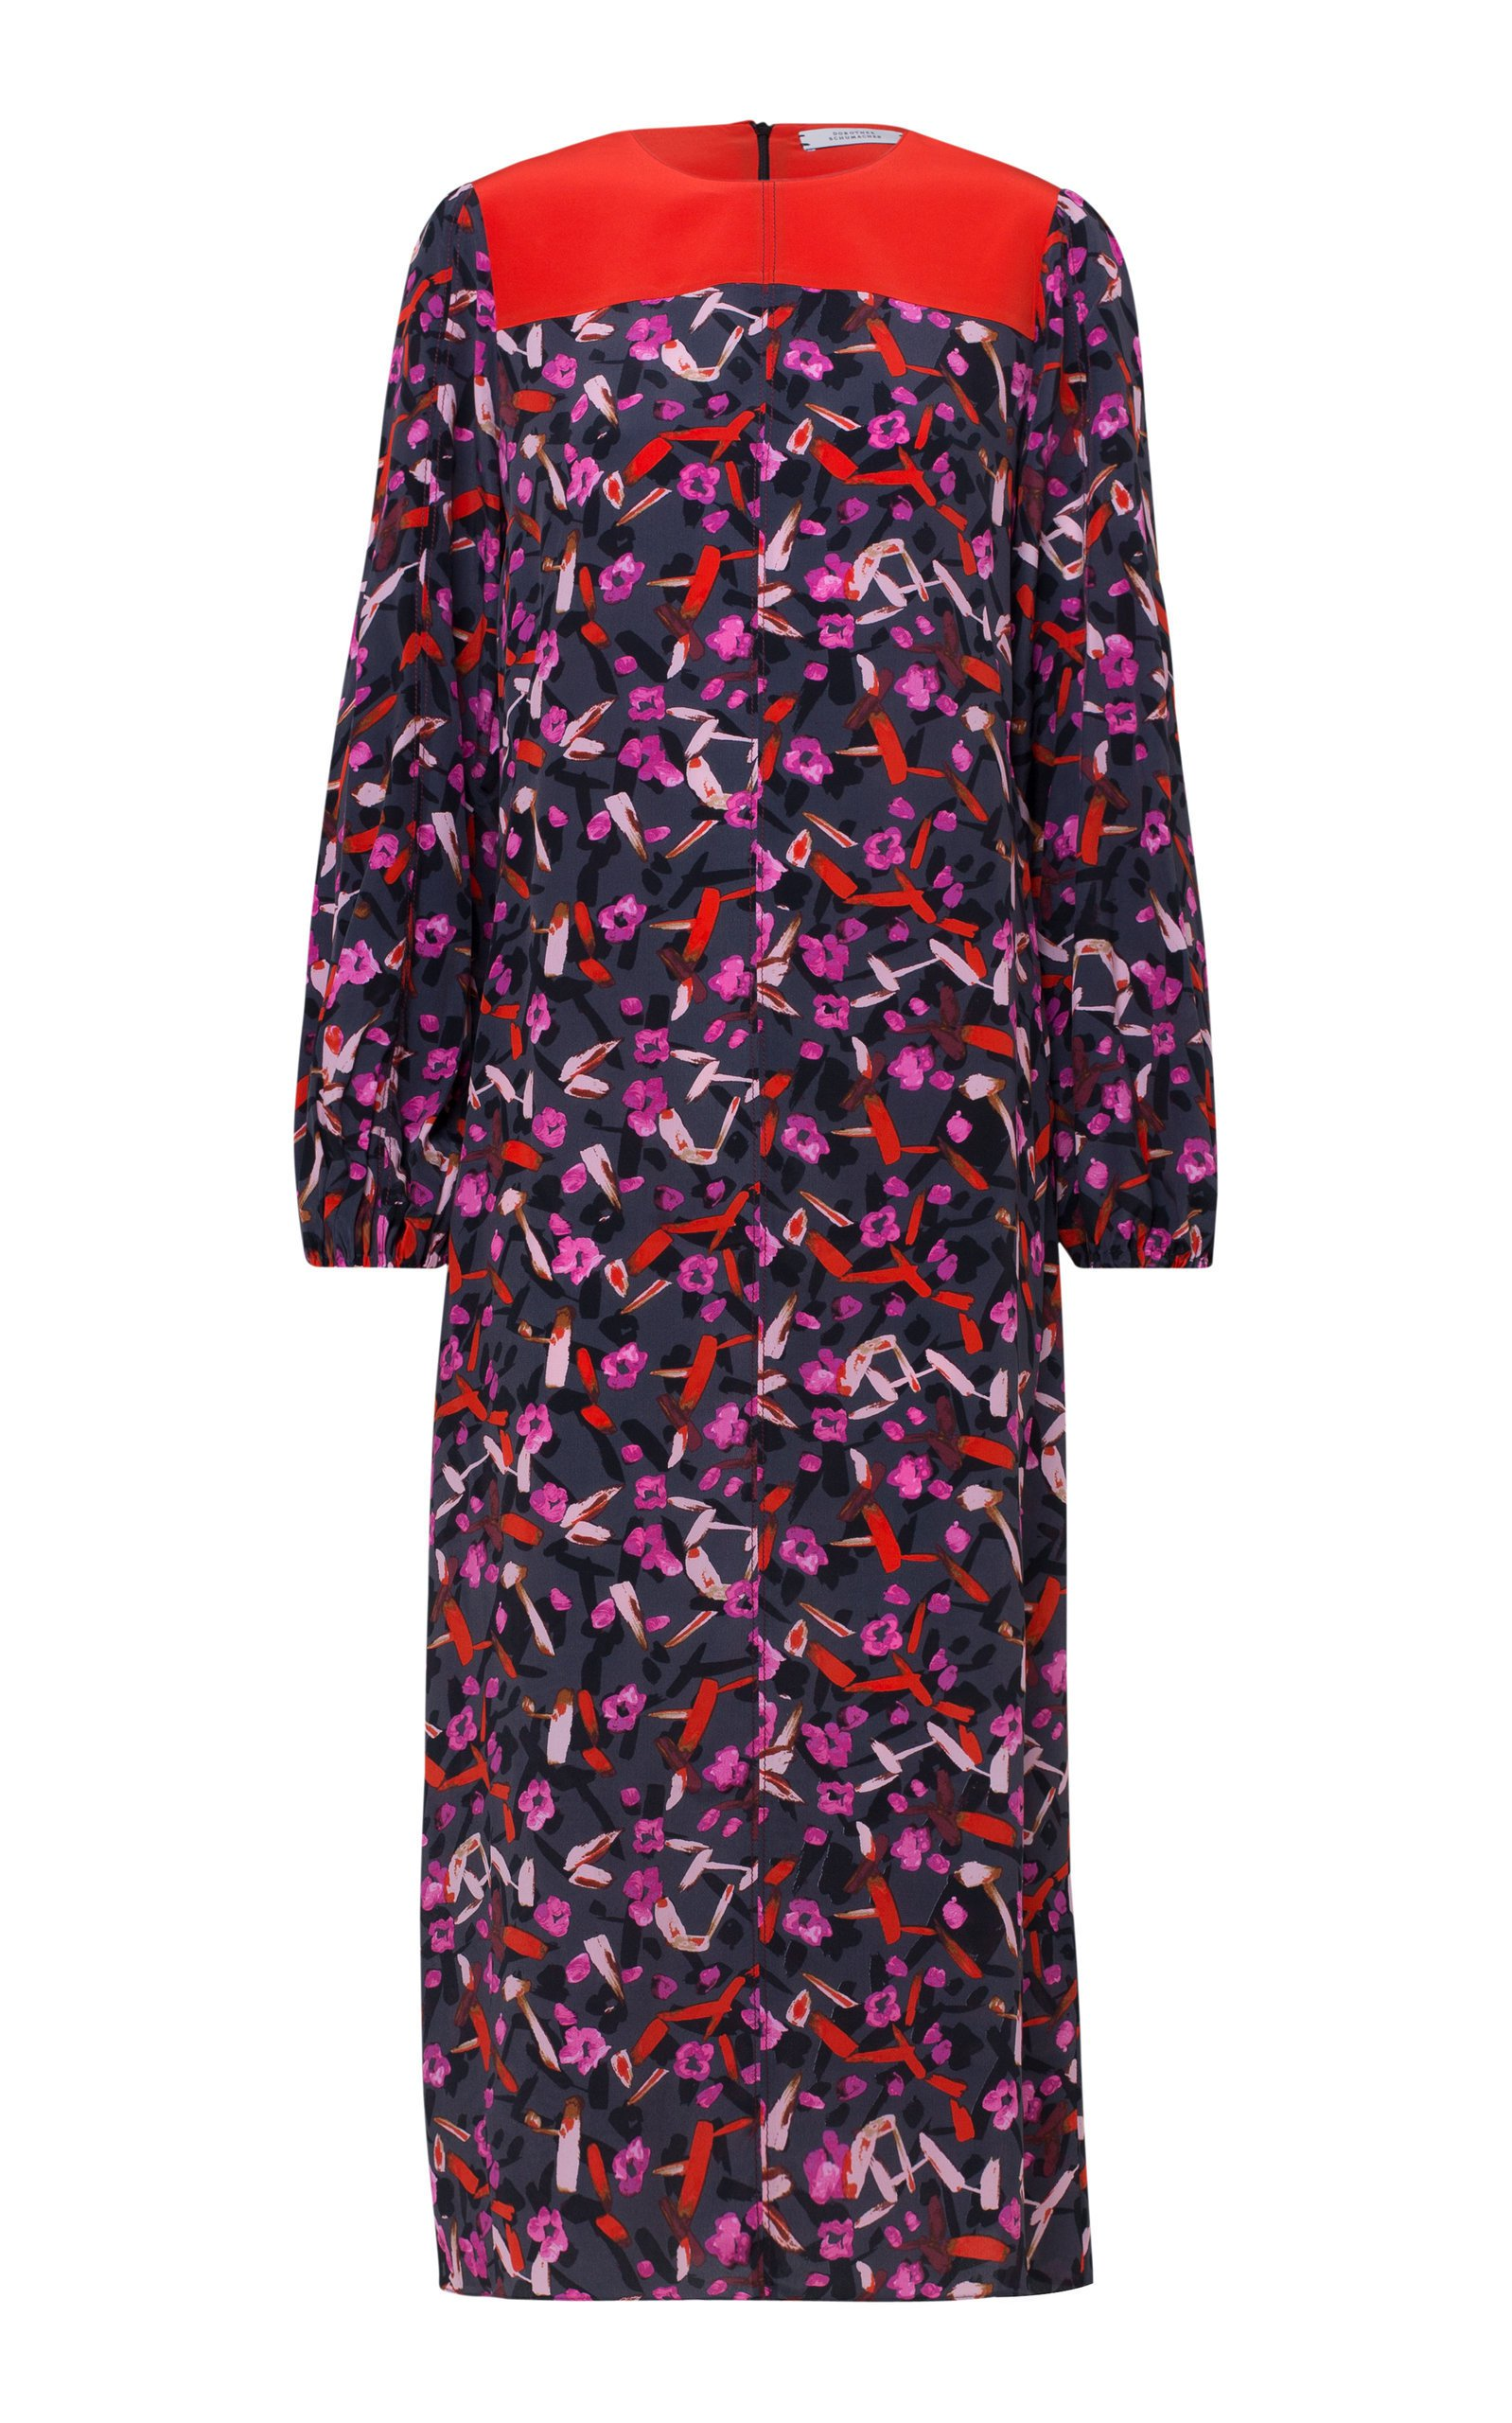 Dorothee Schumacher Abstract Flowering High Neck Printed Dress